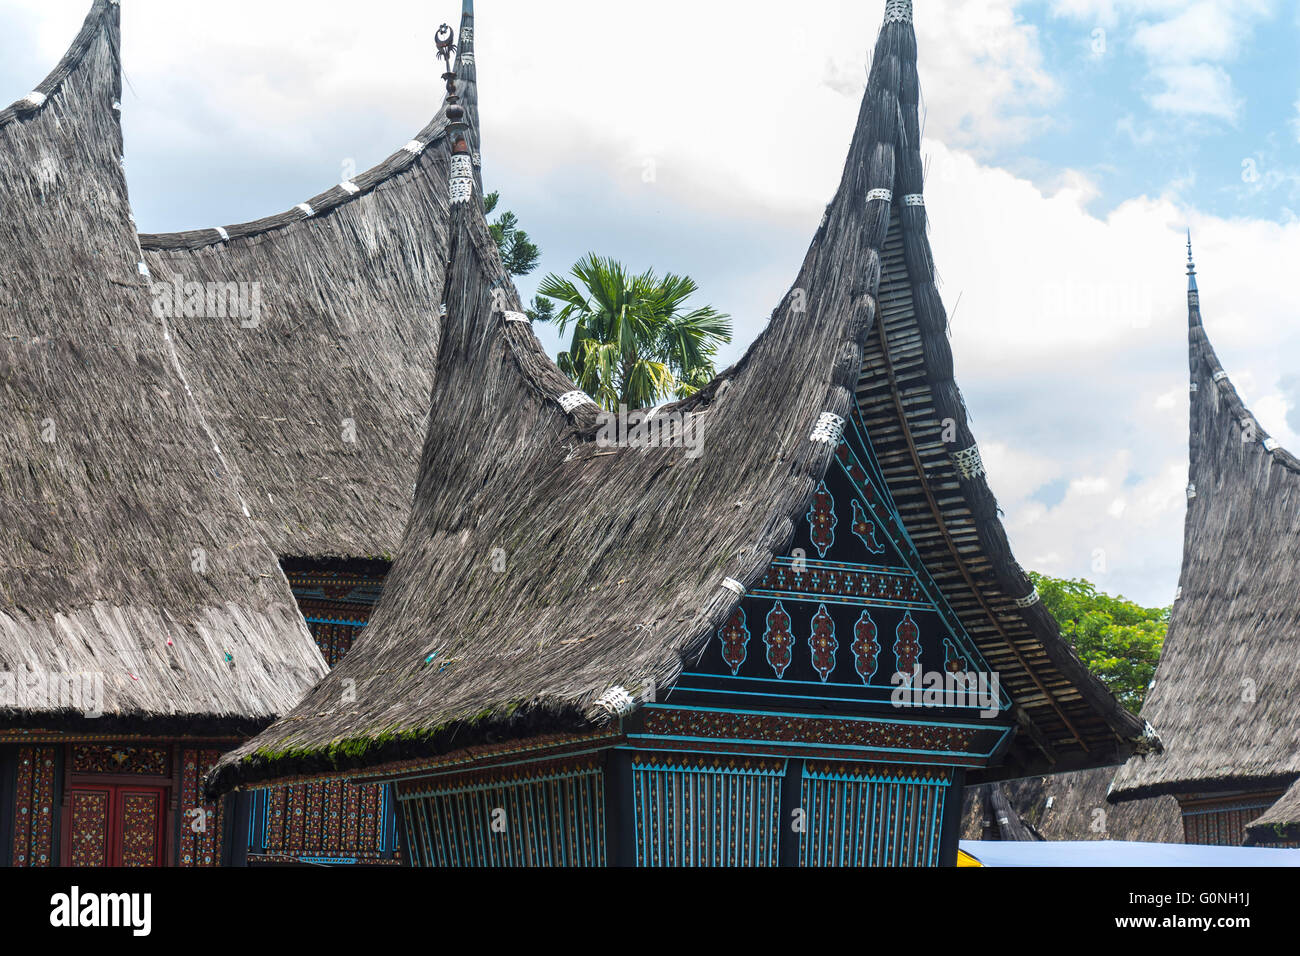 Traditional indonesian houses in Taman Mini Park - Stock Image